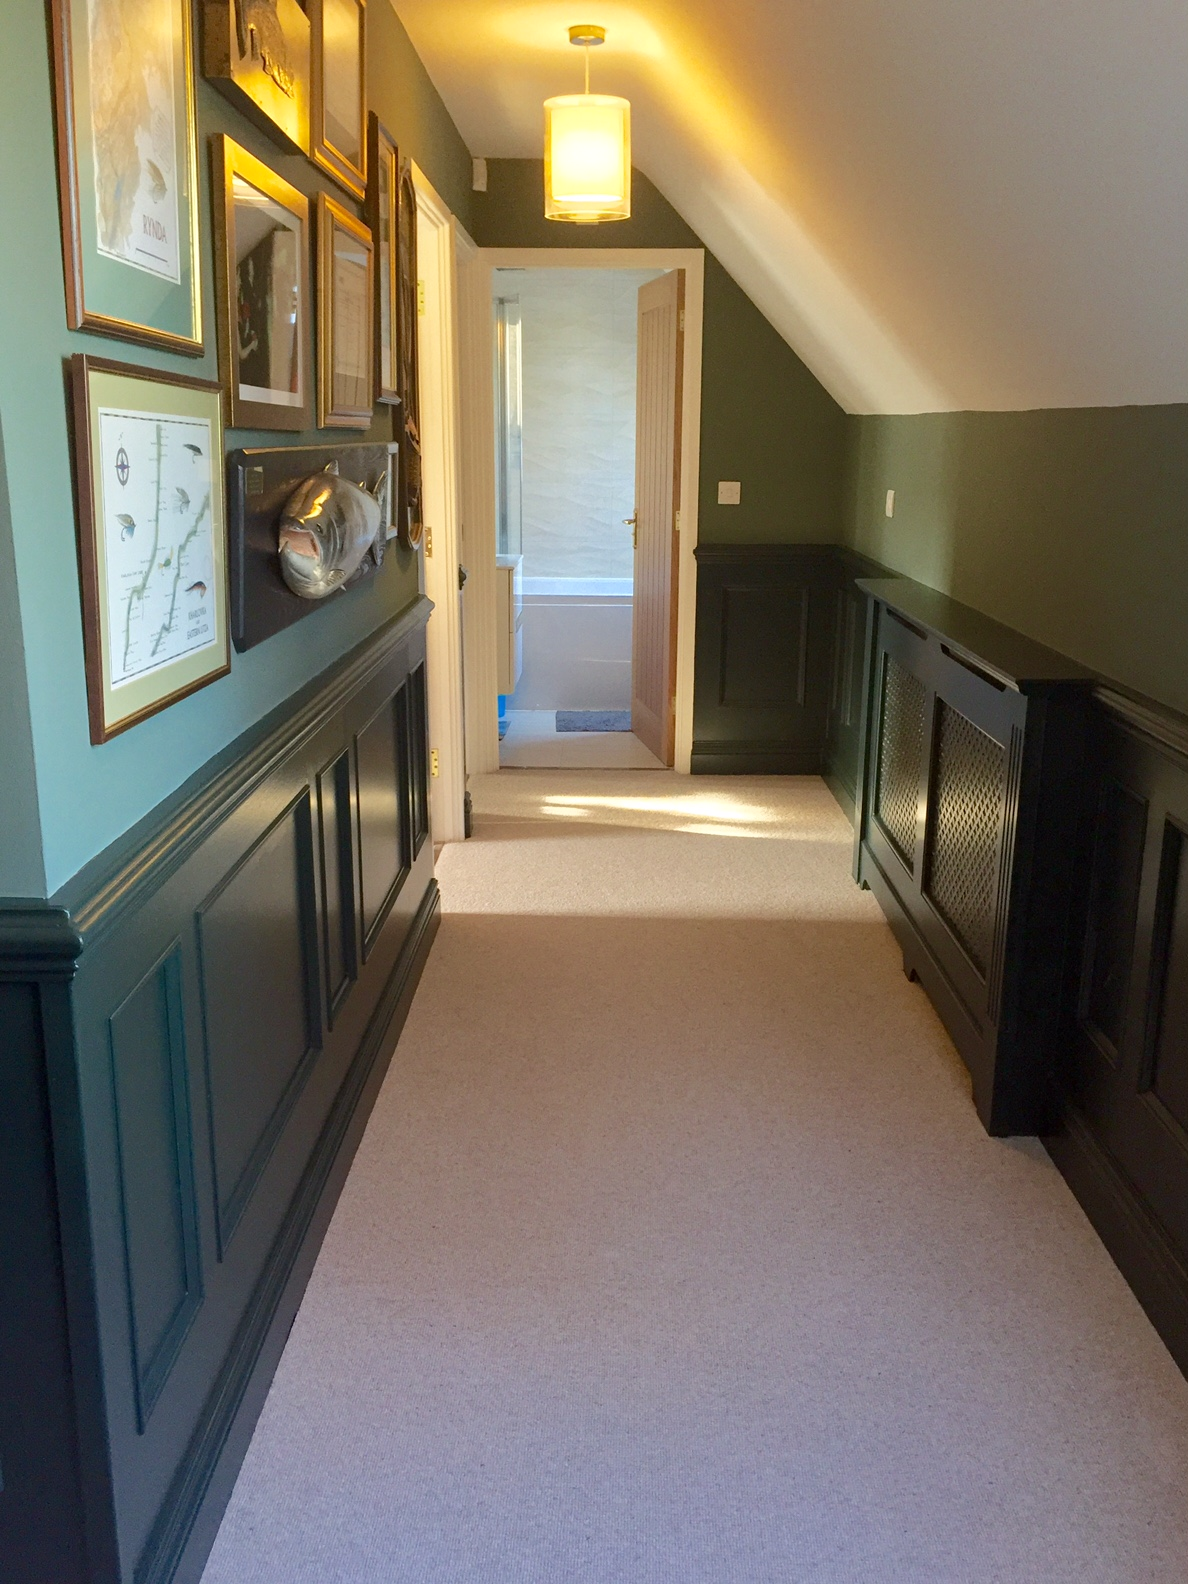 Room Showcase Designs Recommended Mdf Living: Hallway Ideas Mdf Wall Panels By Wall Panelling Experts